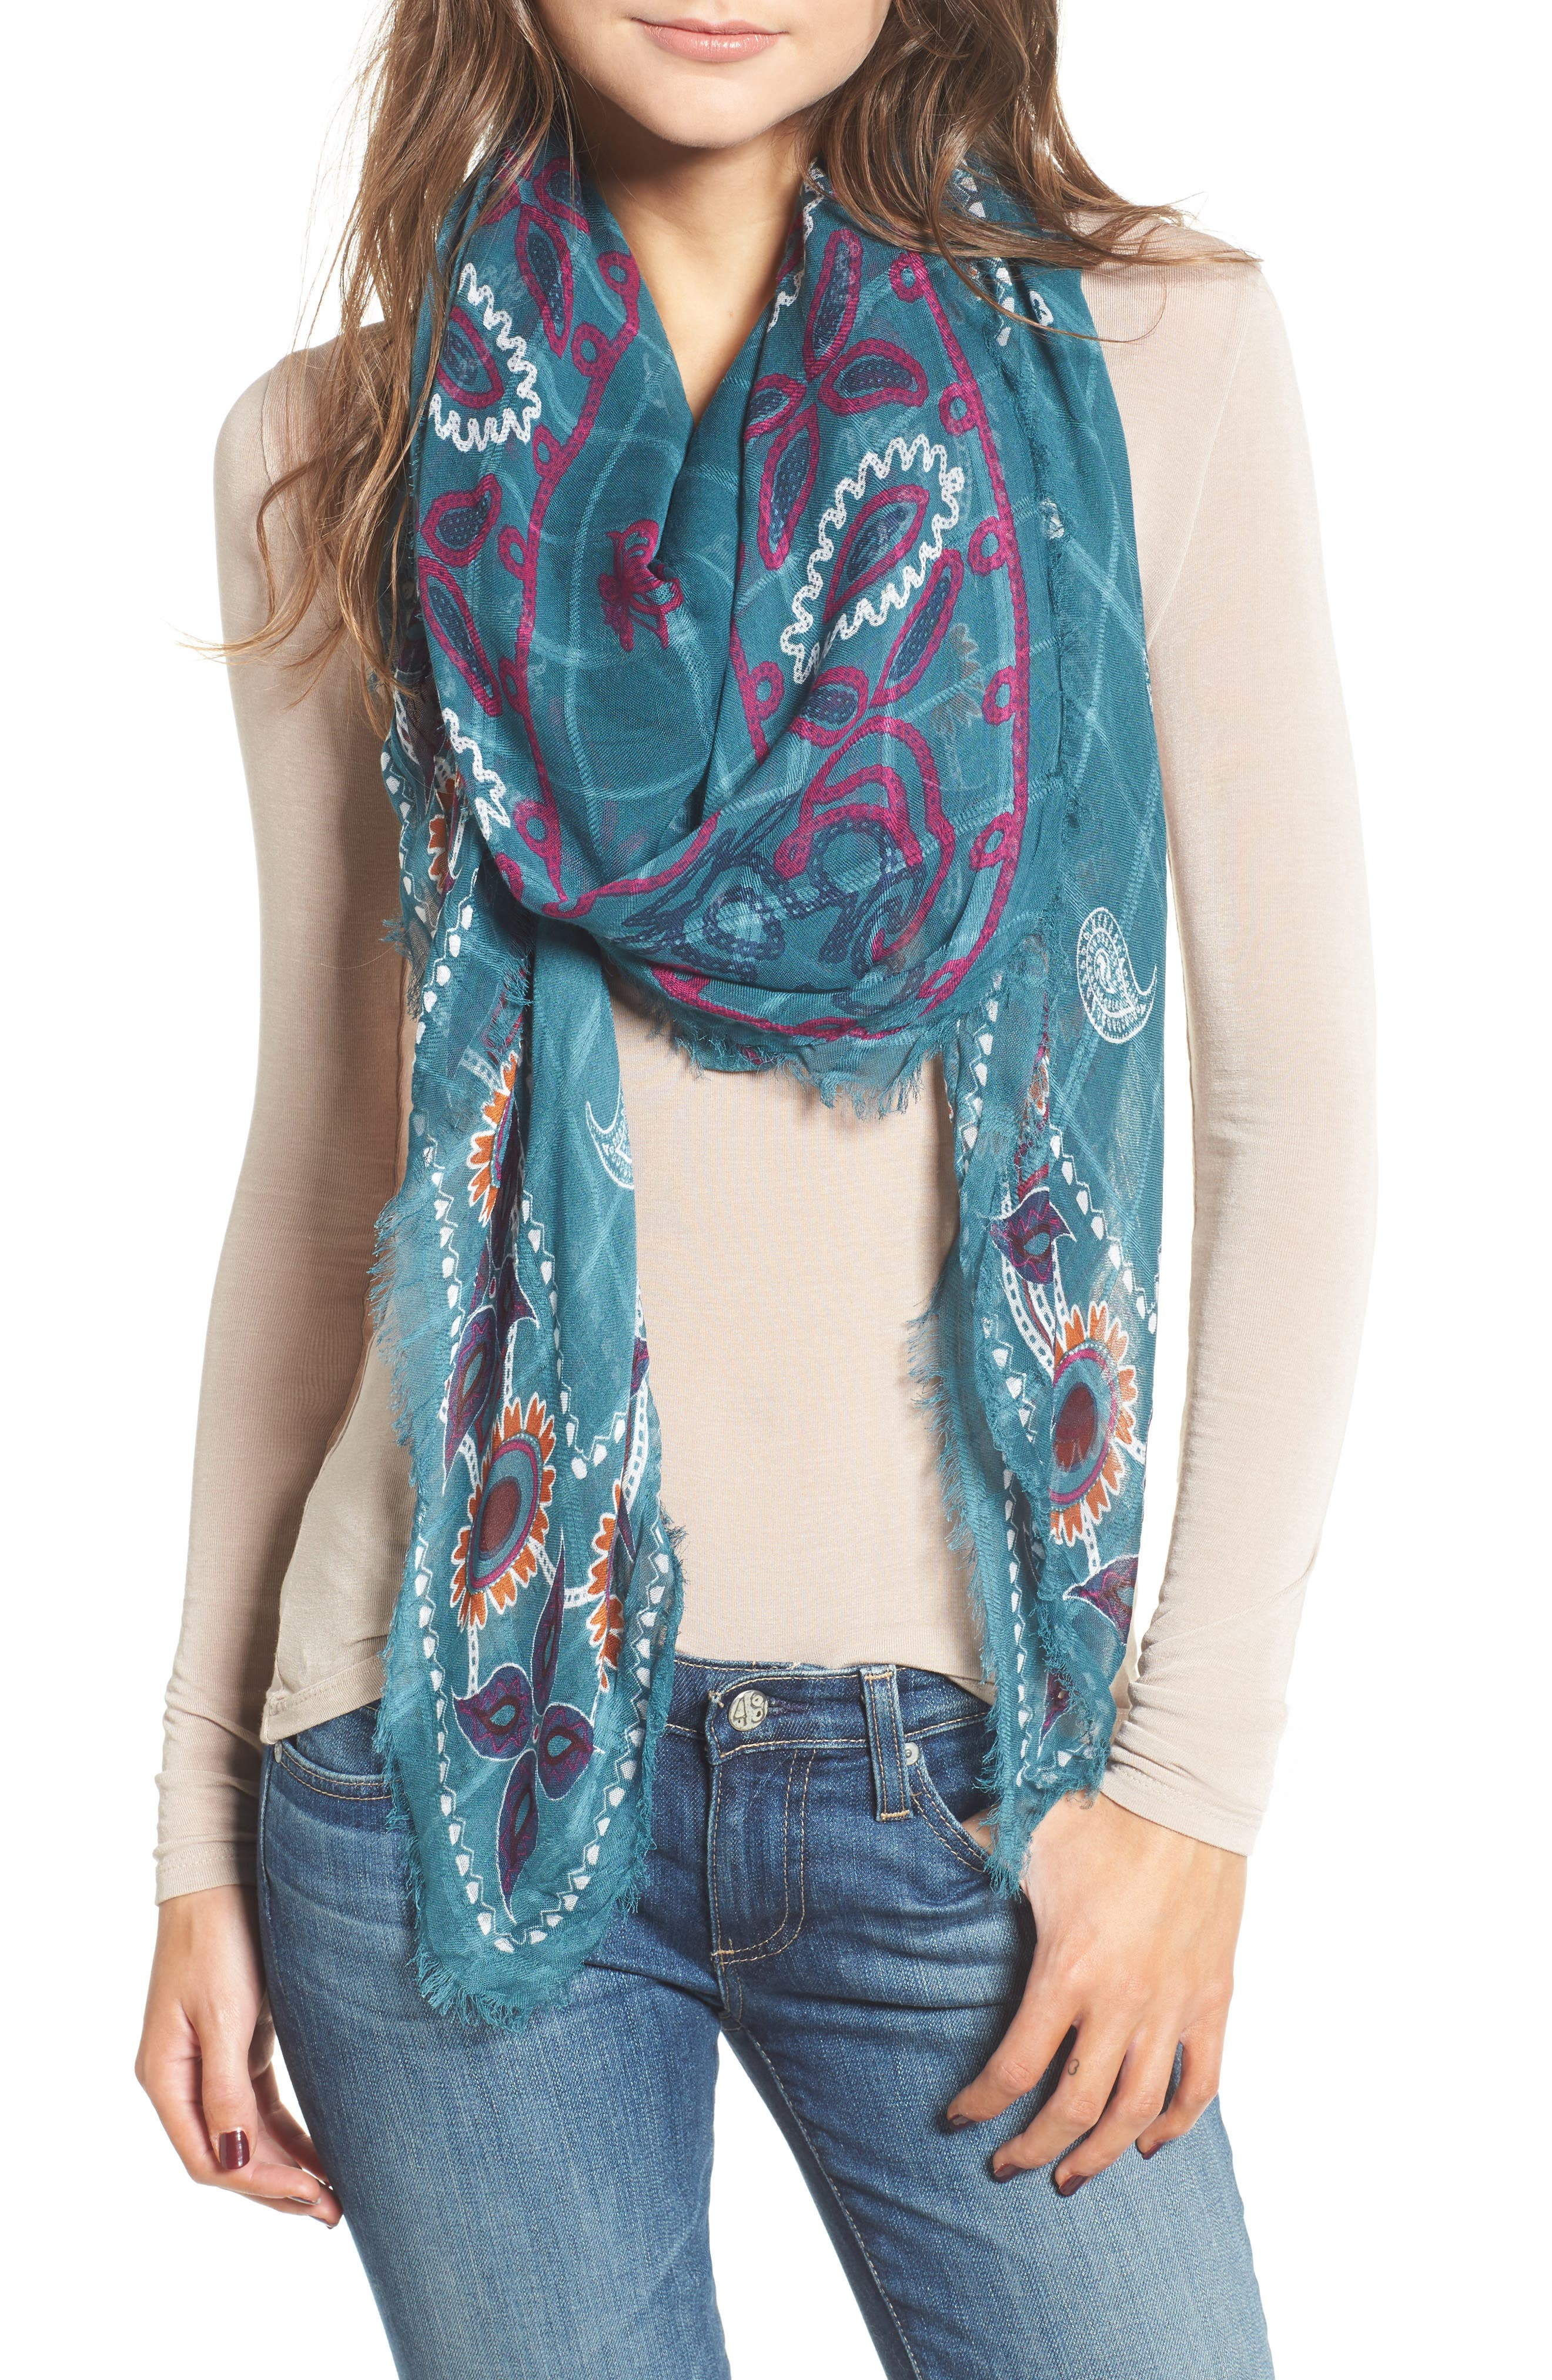 Treasure & Bond Print Textured Square Scarf